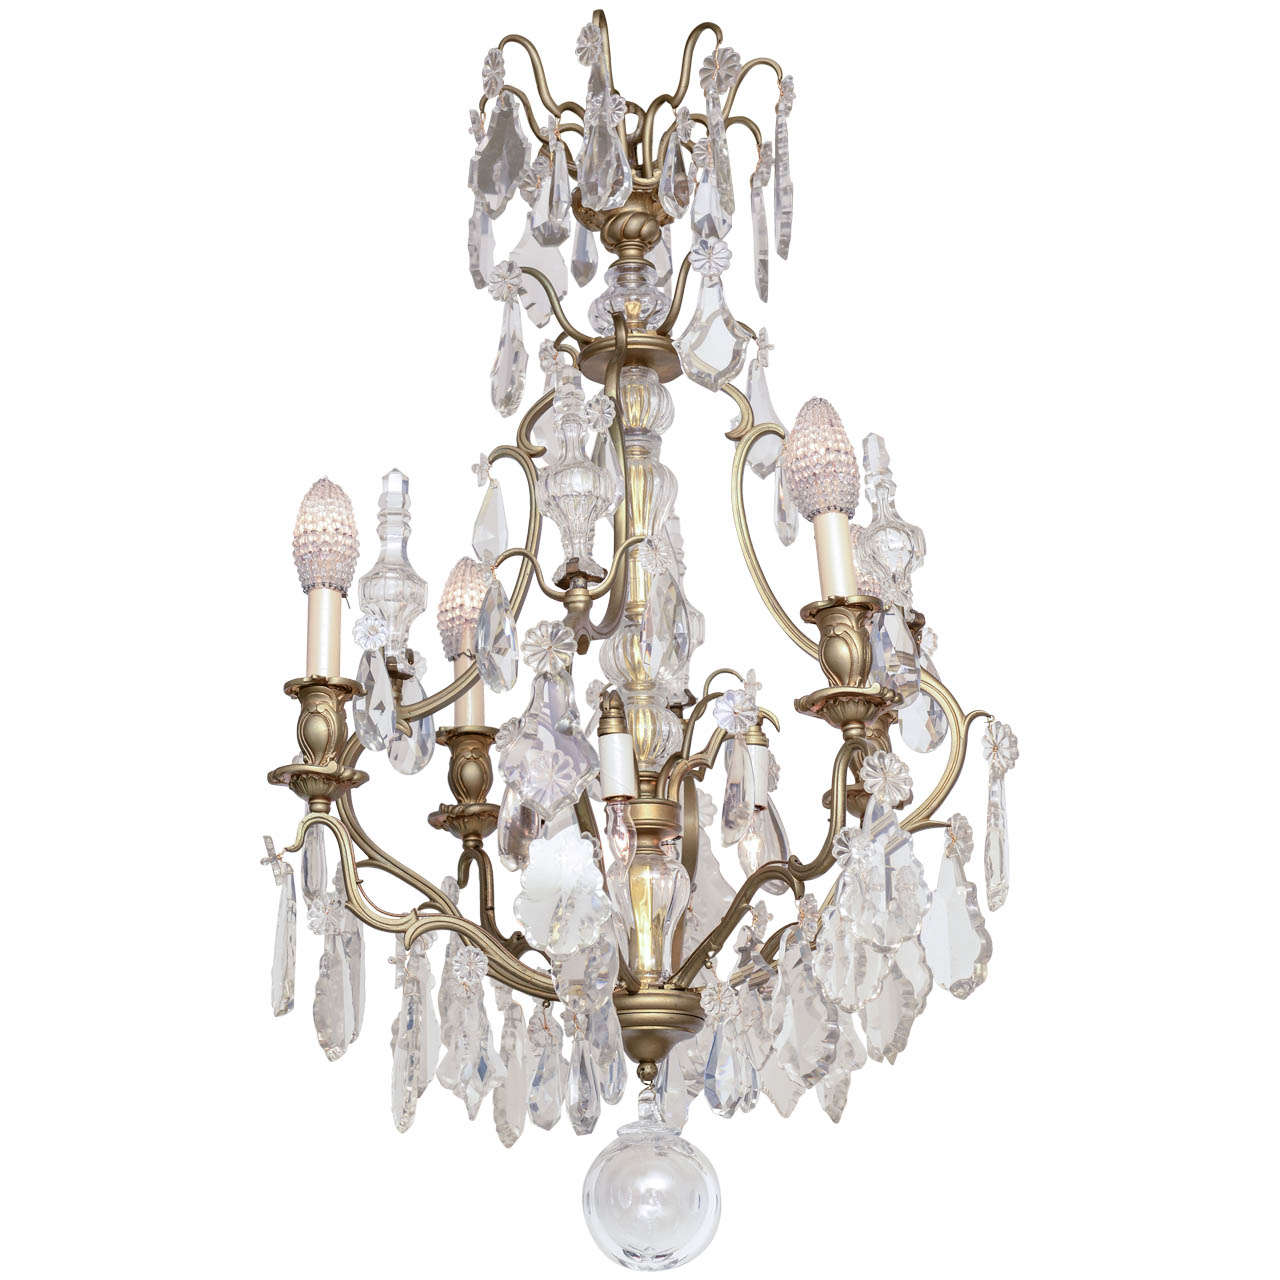 19th Century Antique French Baccarat Chandelier At 1stdibs